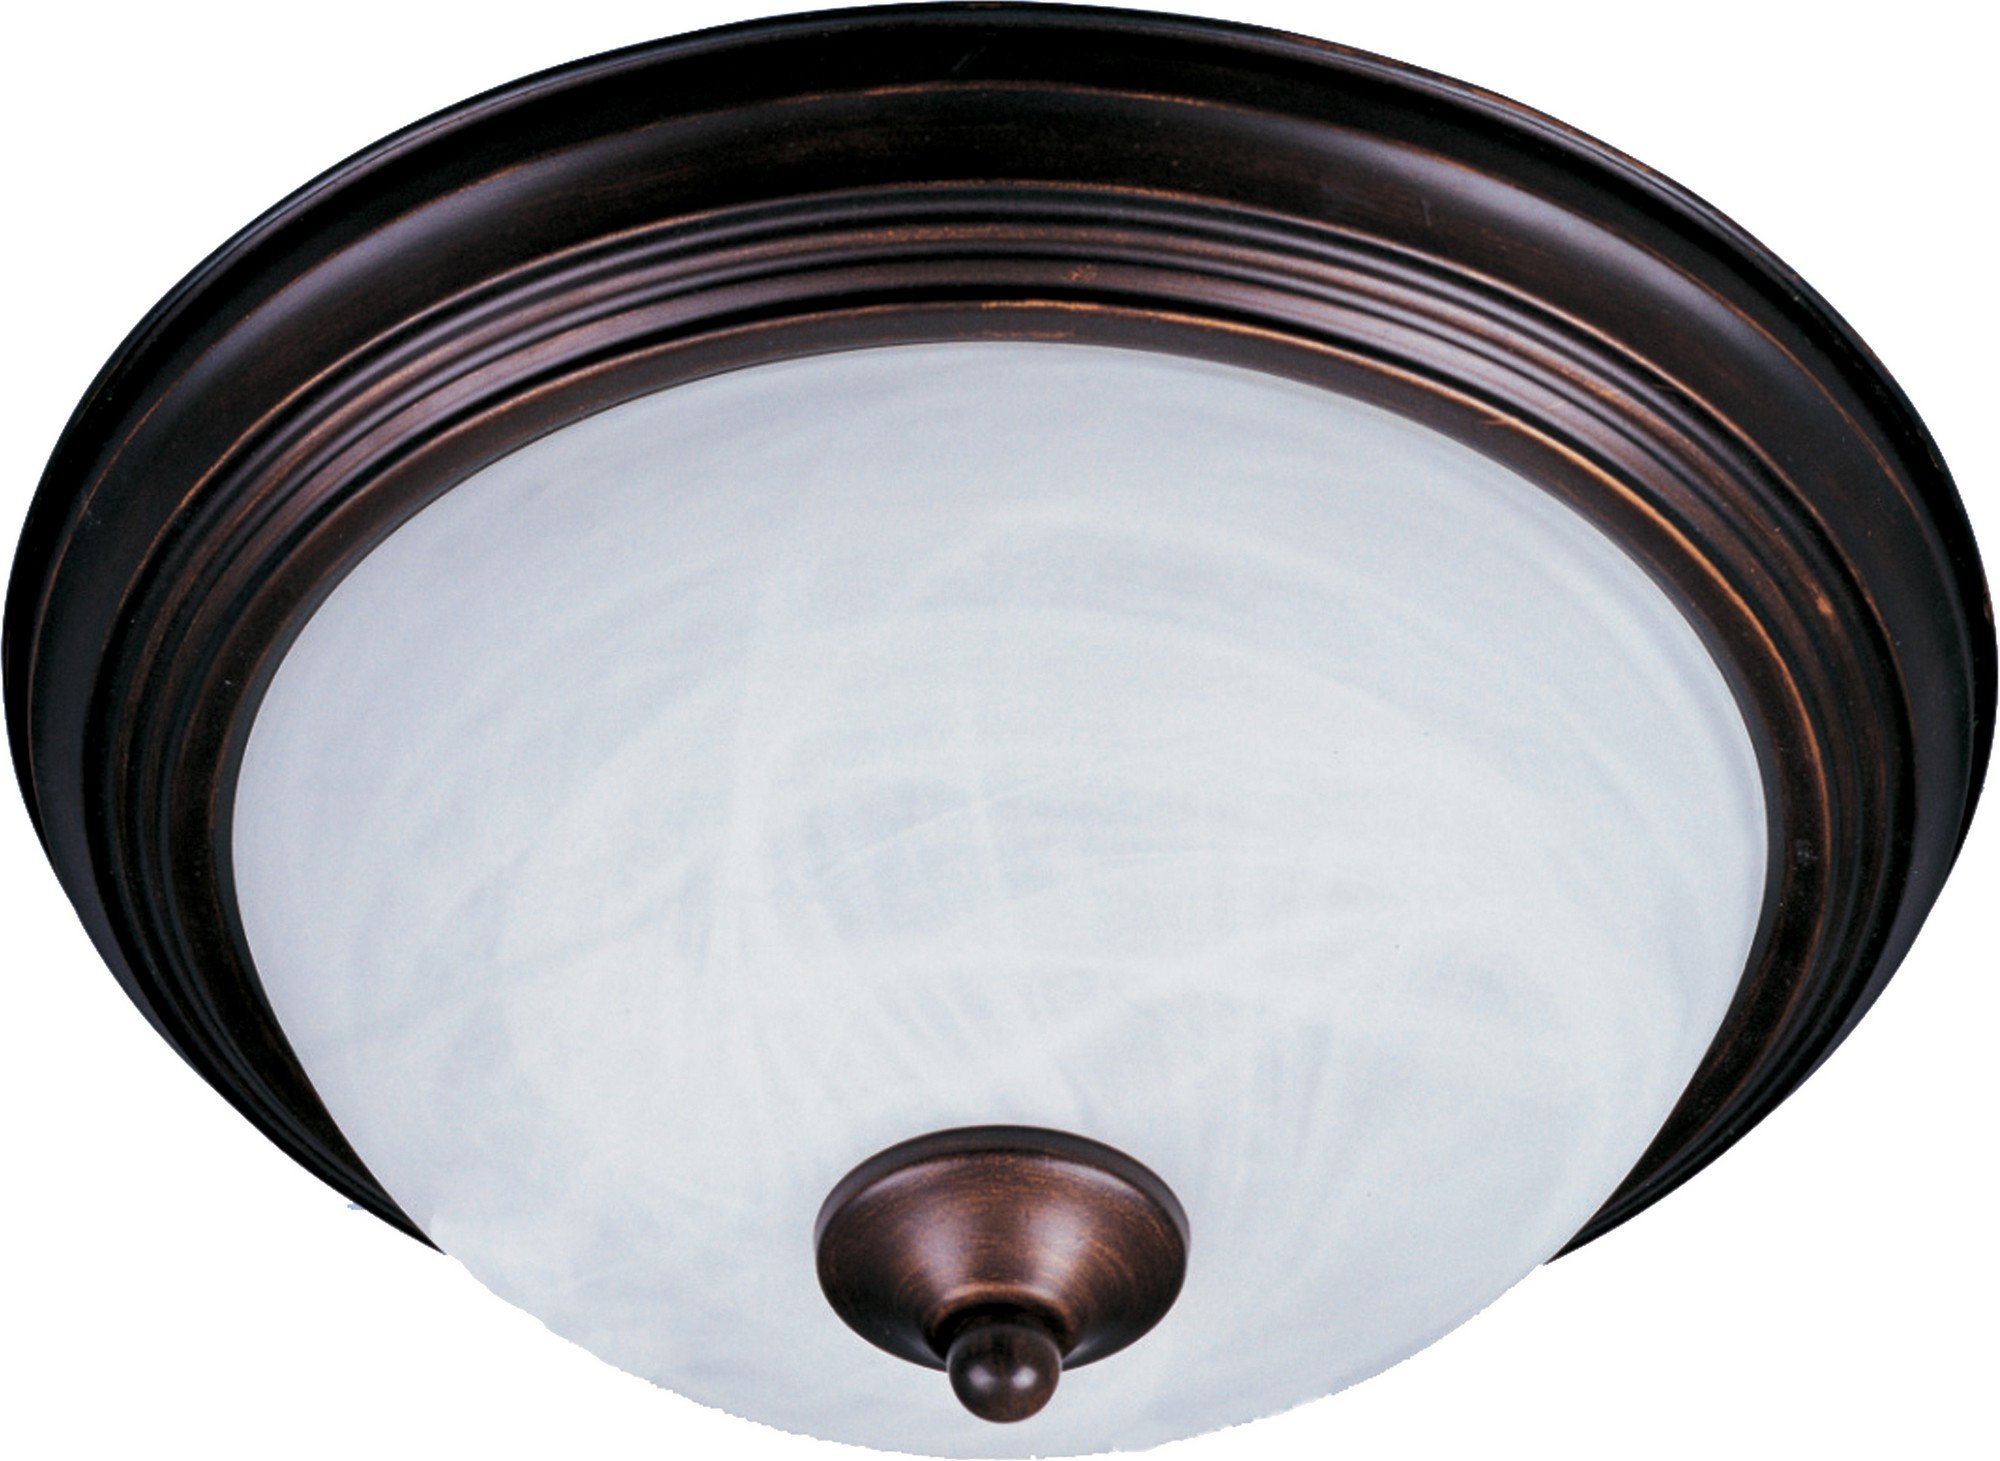 Maxim 5849MROI Essentials 2-Light Flush Mount, Oil Rubbed Bronze Finish, Marble Glass, MB Incandescent Incandescent Bulb , 60W Max., Dry Safety Rating, Standard Dimmable, Glass Shade Material, Rated Lumens